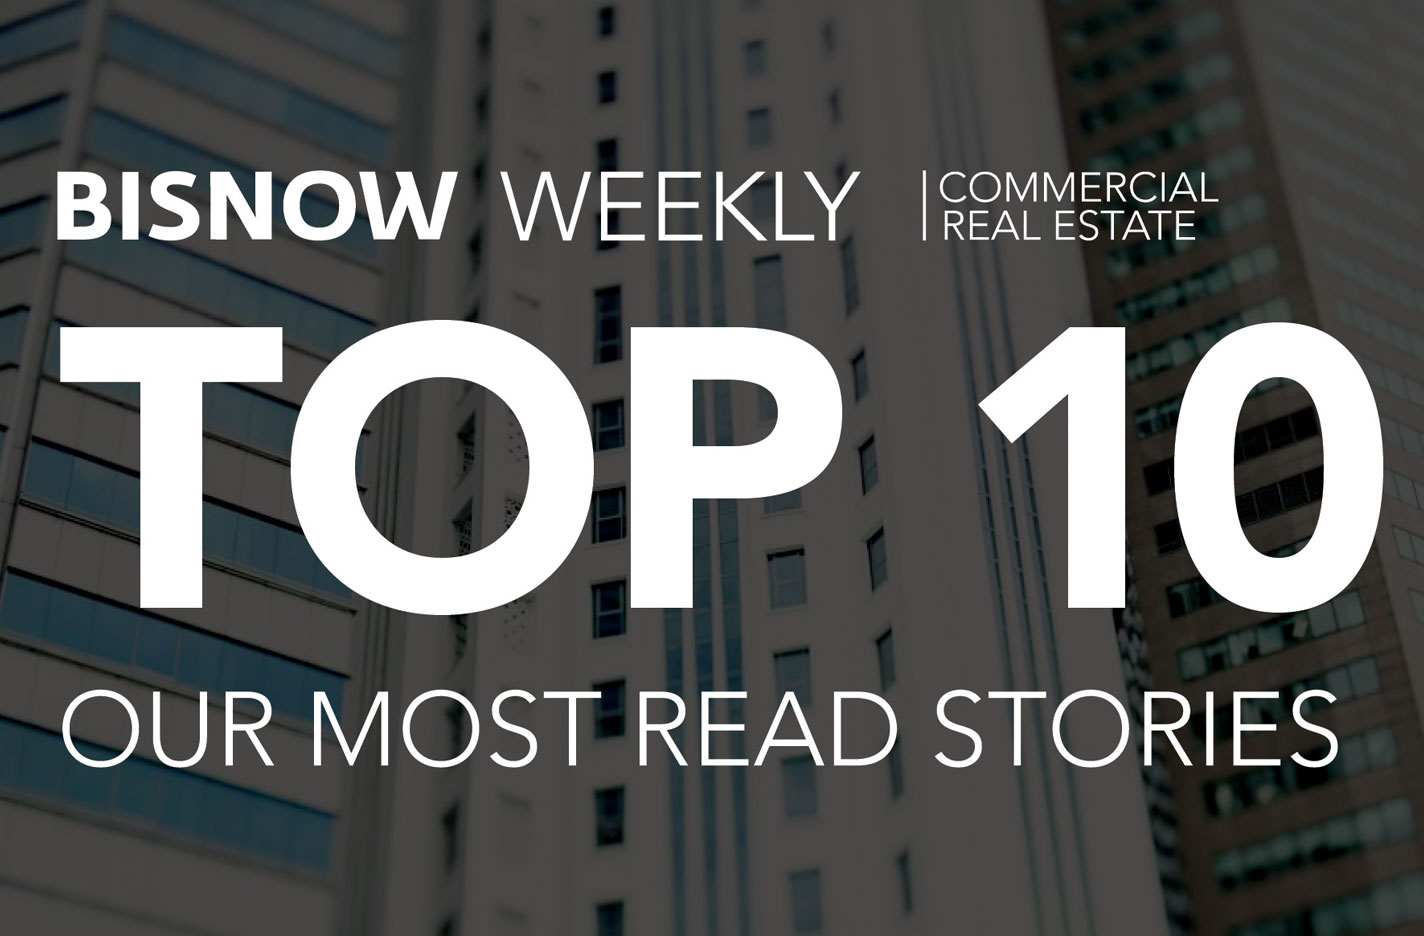 Top 10 Most Popular Commercial Real Estate Stories This Week Presented By First American Title